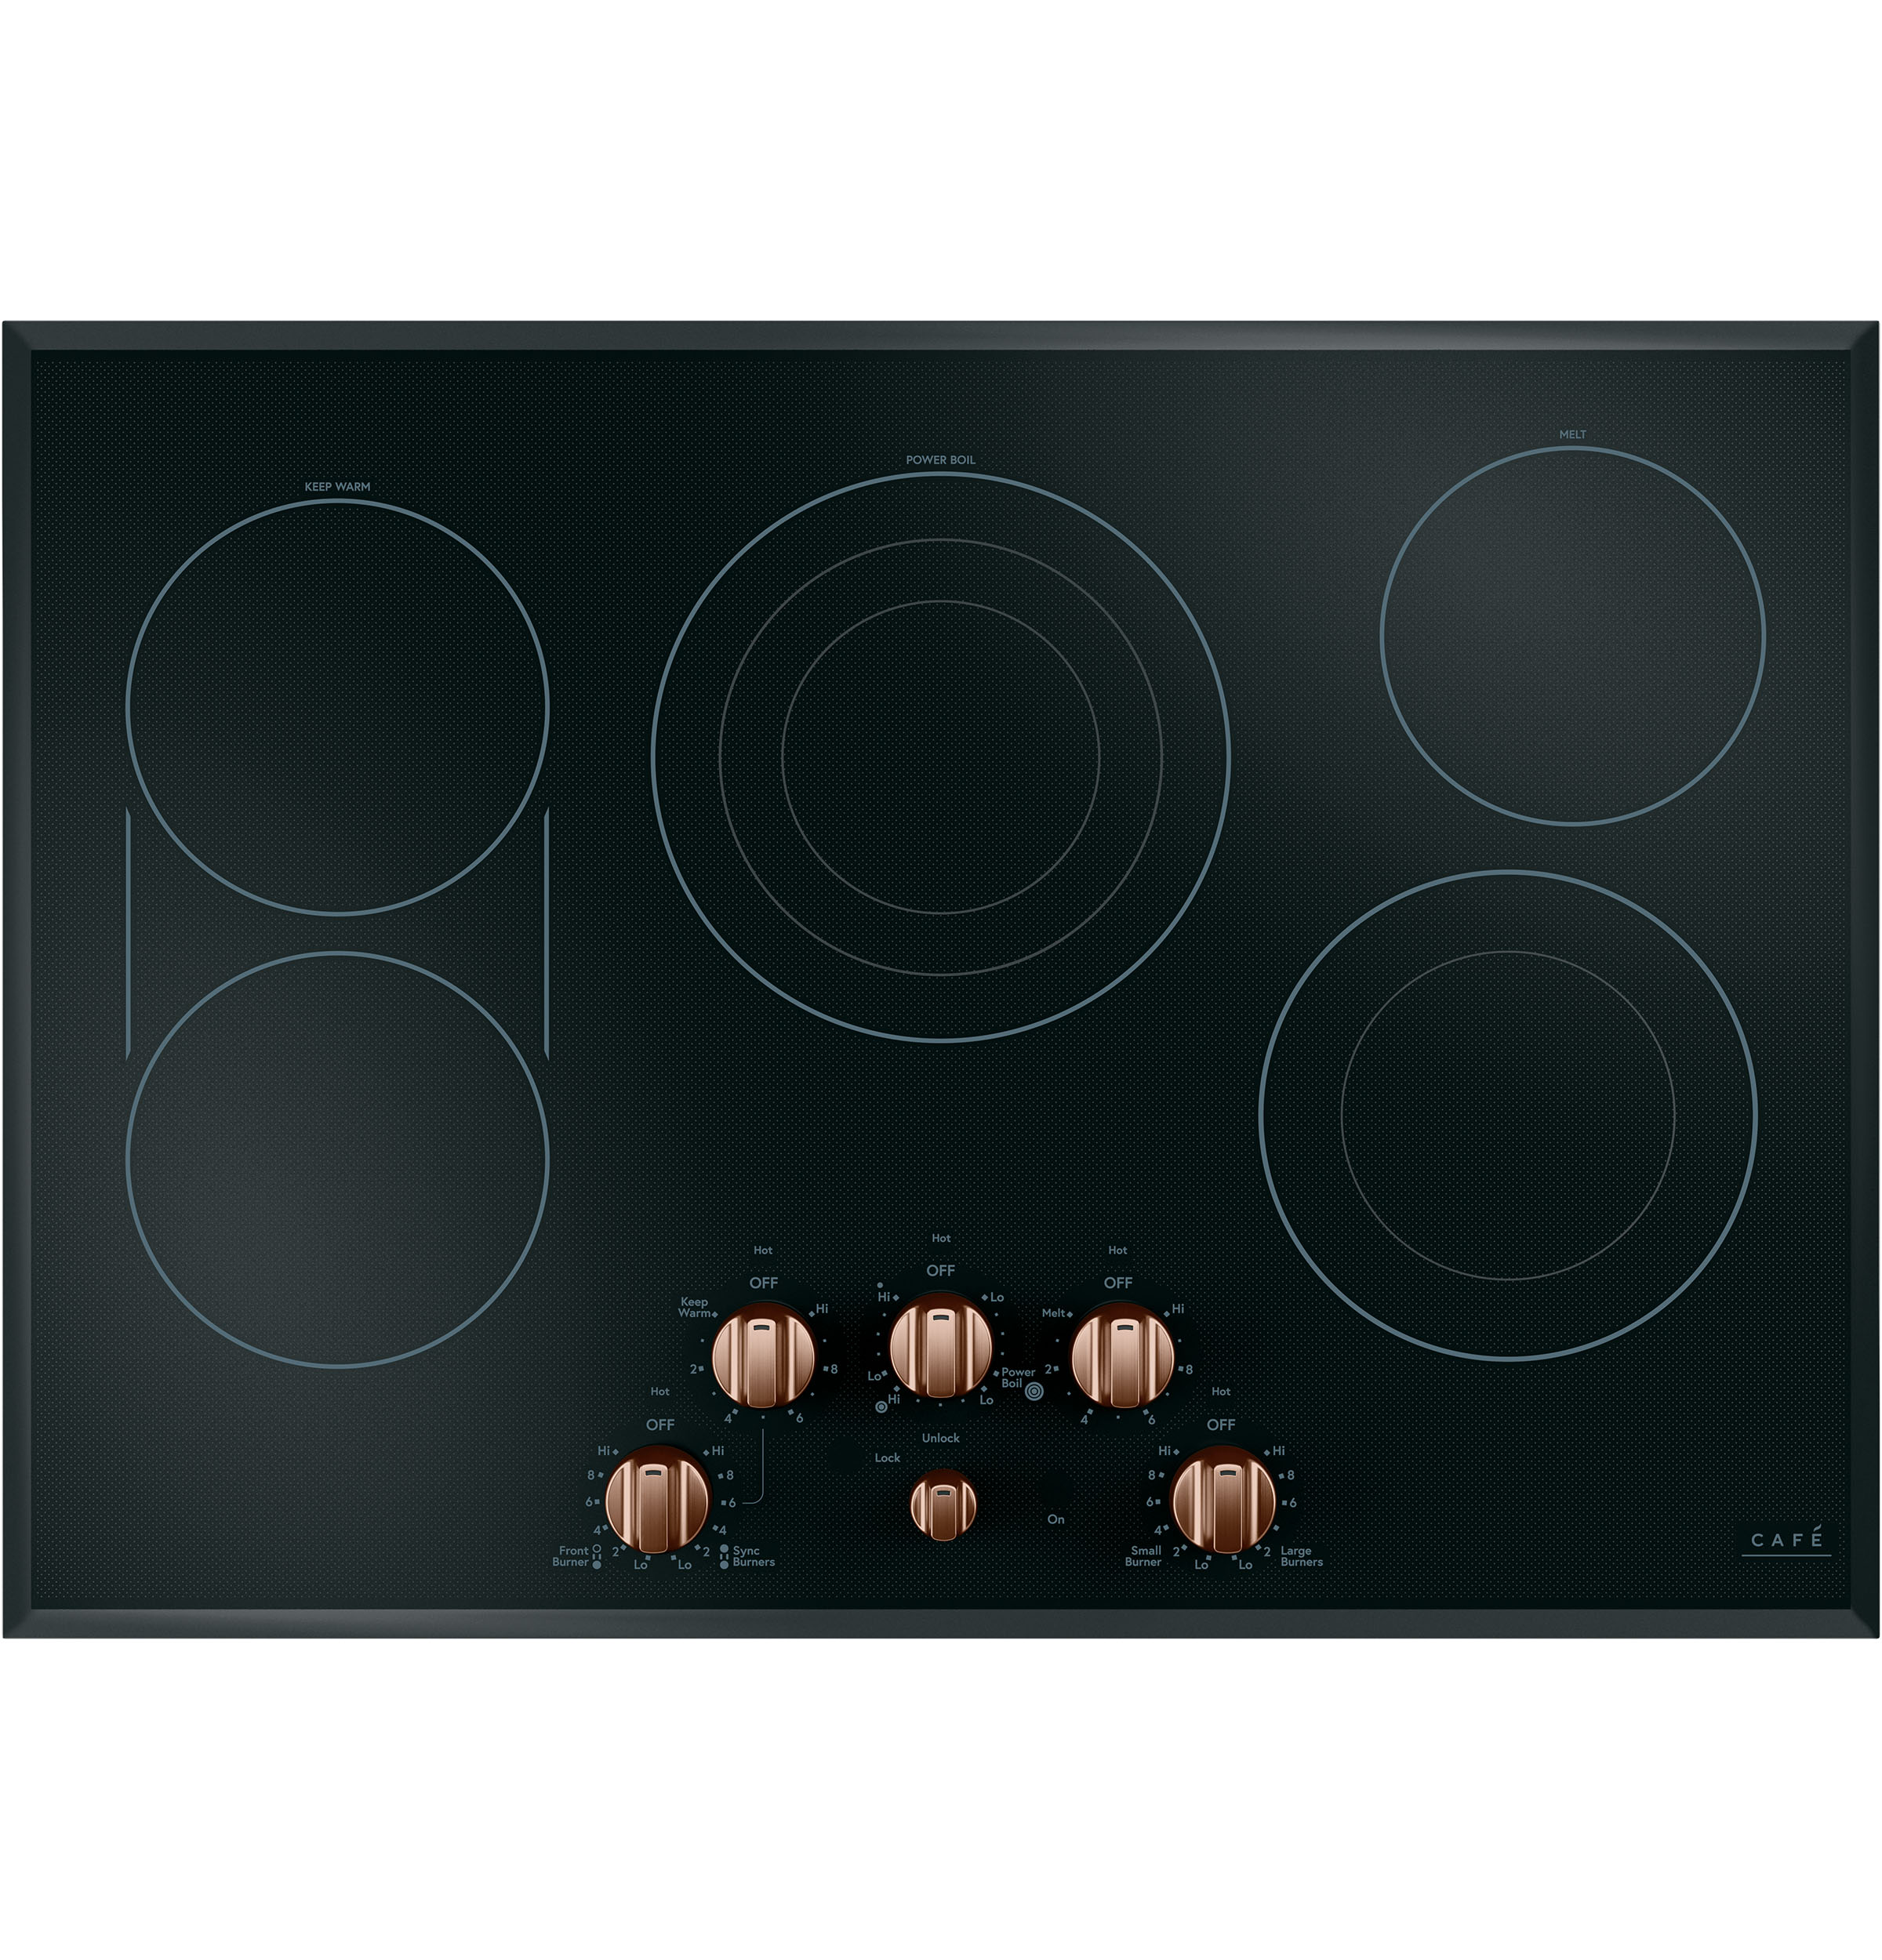 Cafe 5 Electric Cooktop Knobs - Brushed Copper